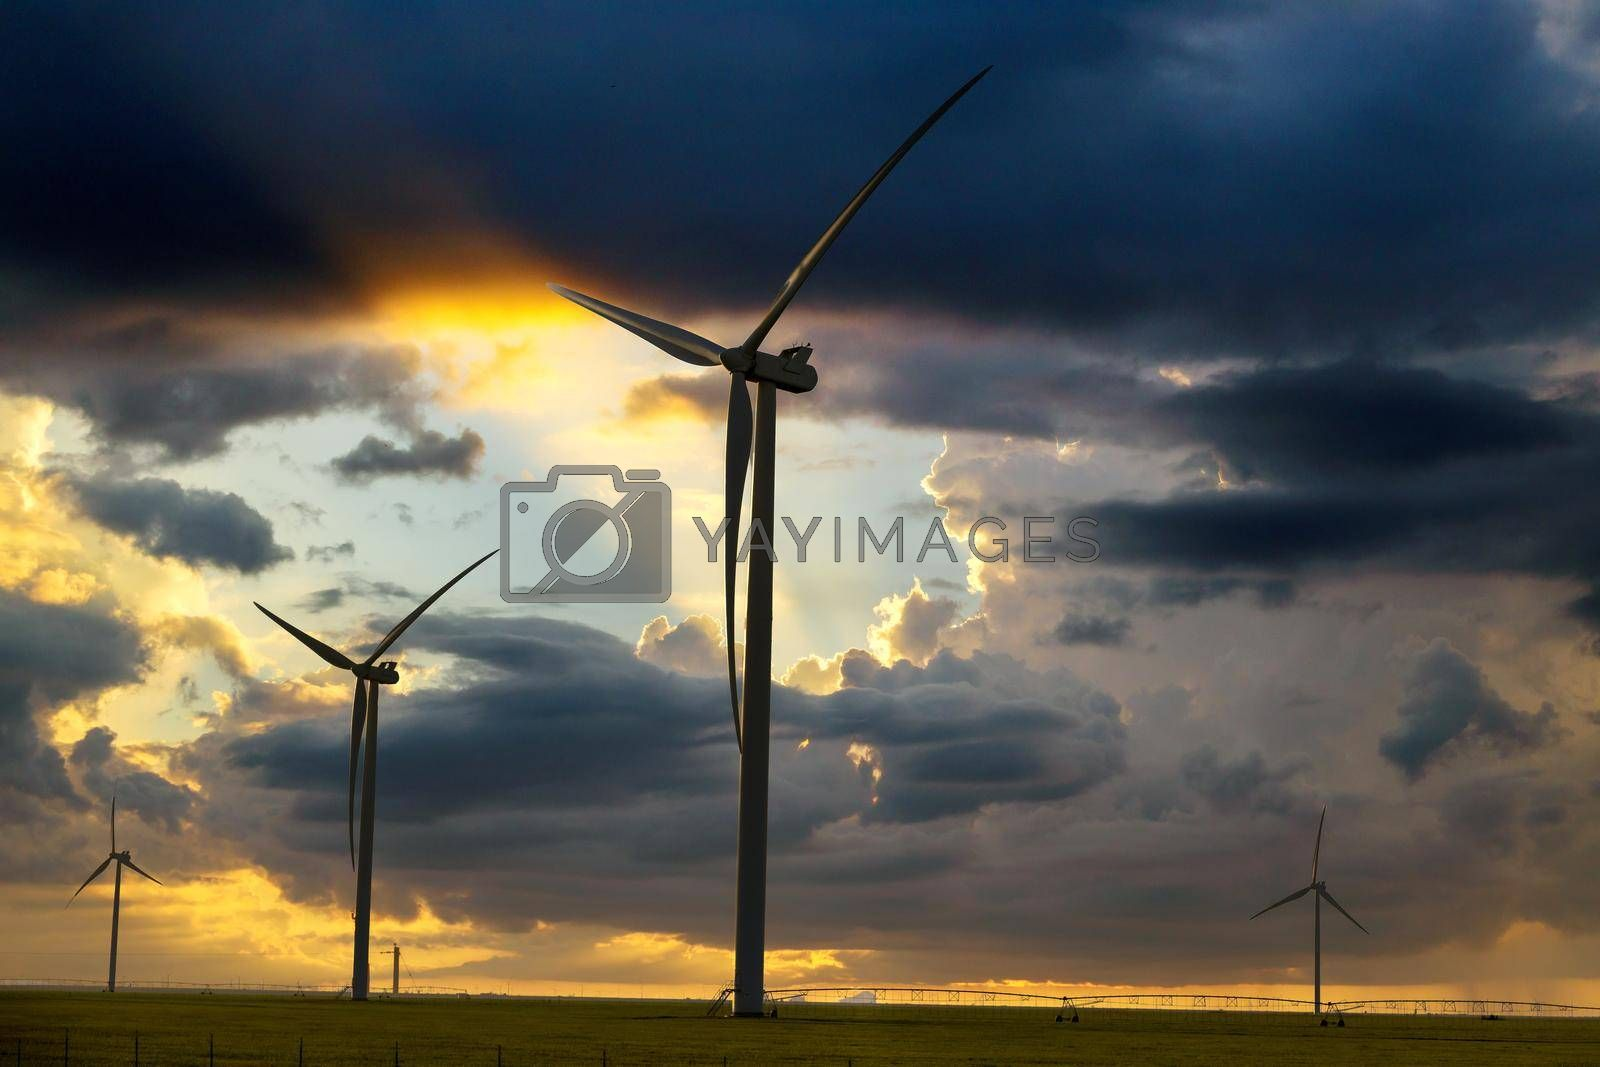 Wind turbines, wind farms silhouette at sunset with irrigation pivot water system on a farm field in Texas USA